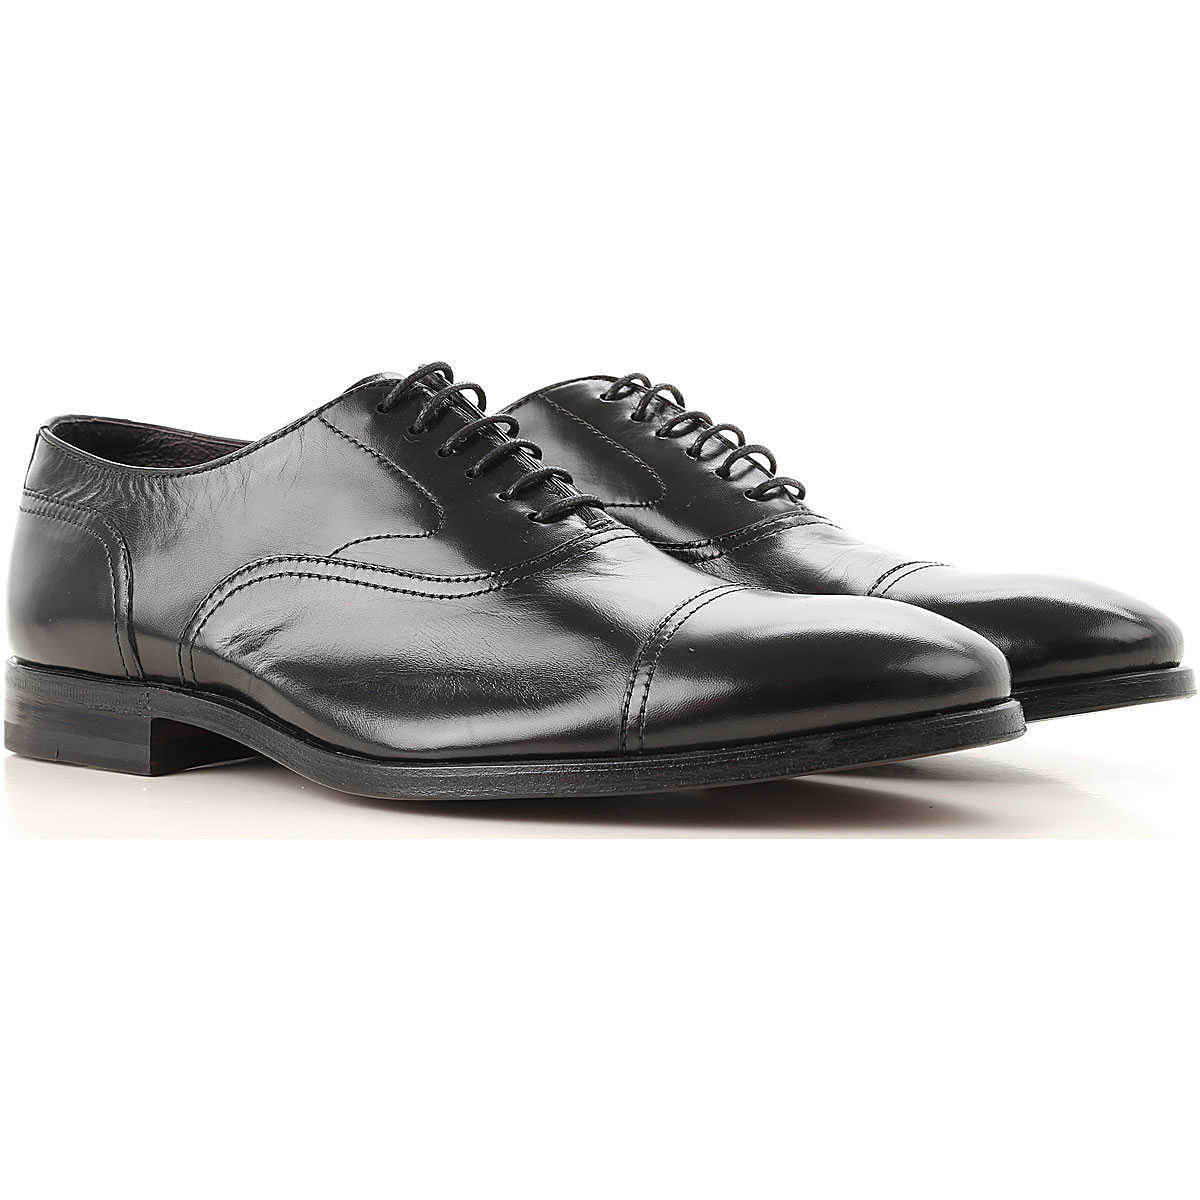 Henderson Lace Up Shoes for Men Oxfords 10 10.5 6 6.5 7 8 8.5 9 9.5 Derbies and Brogues UK - GOOFASH